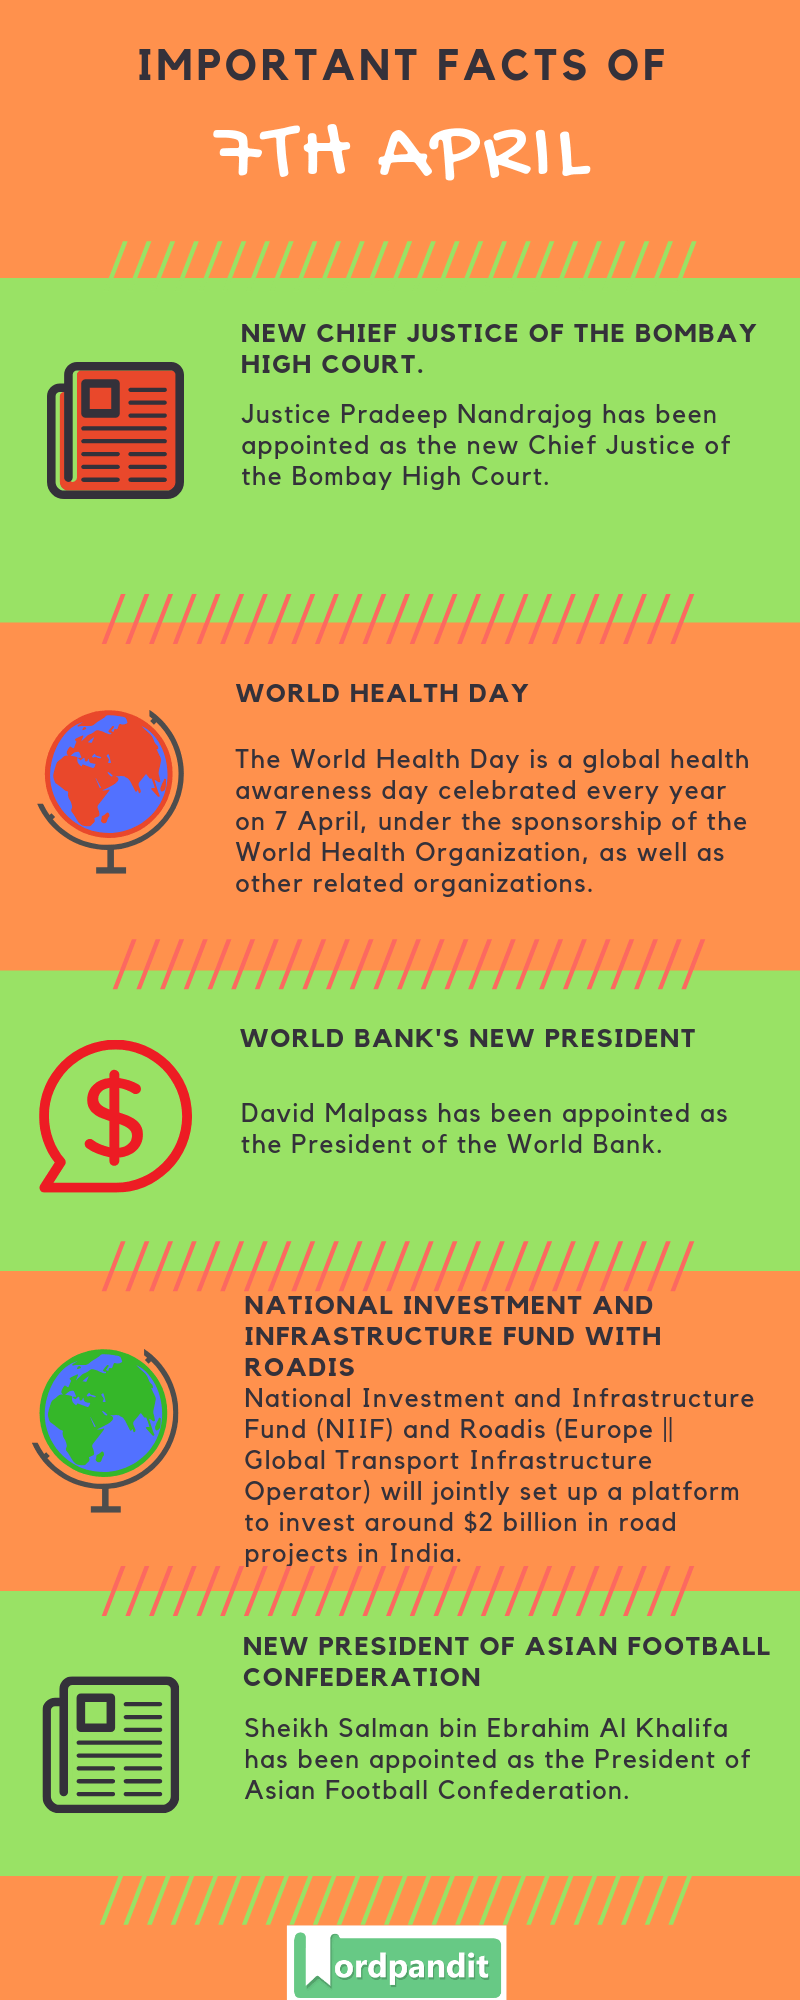 Daily Current Affairs 7 April 2019 Current Affairs Quiz 7 April 2019 Current Affairs Infographic